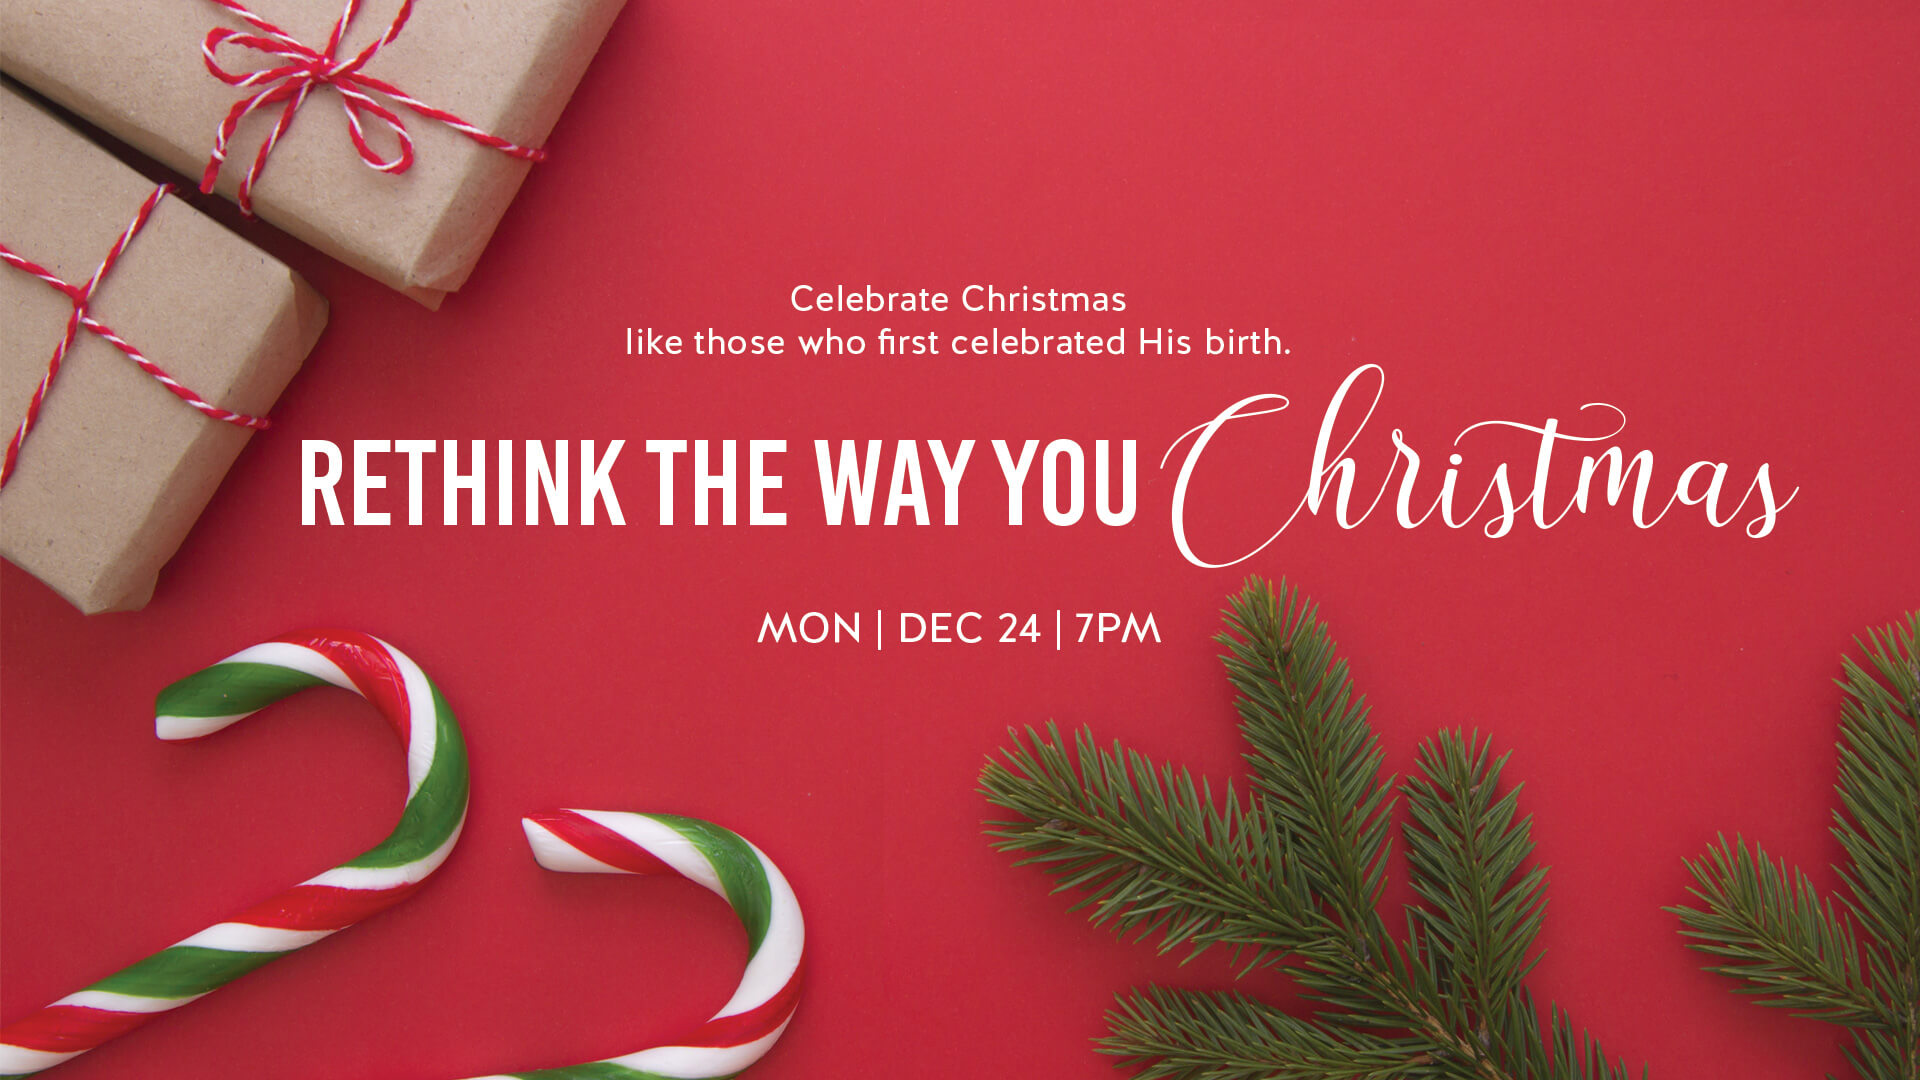 Celebrate Christmas like those who first celebrate his birth. Rethink the way you Christmas.